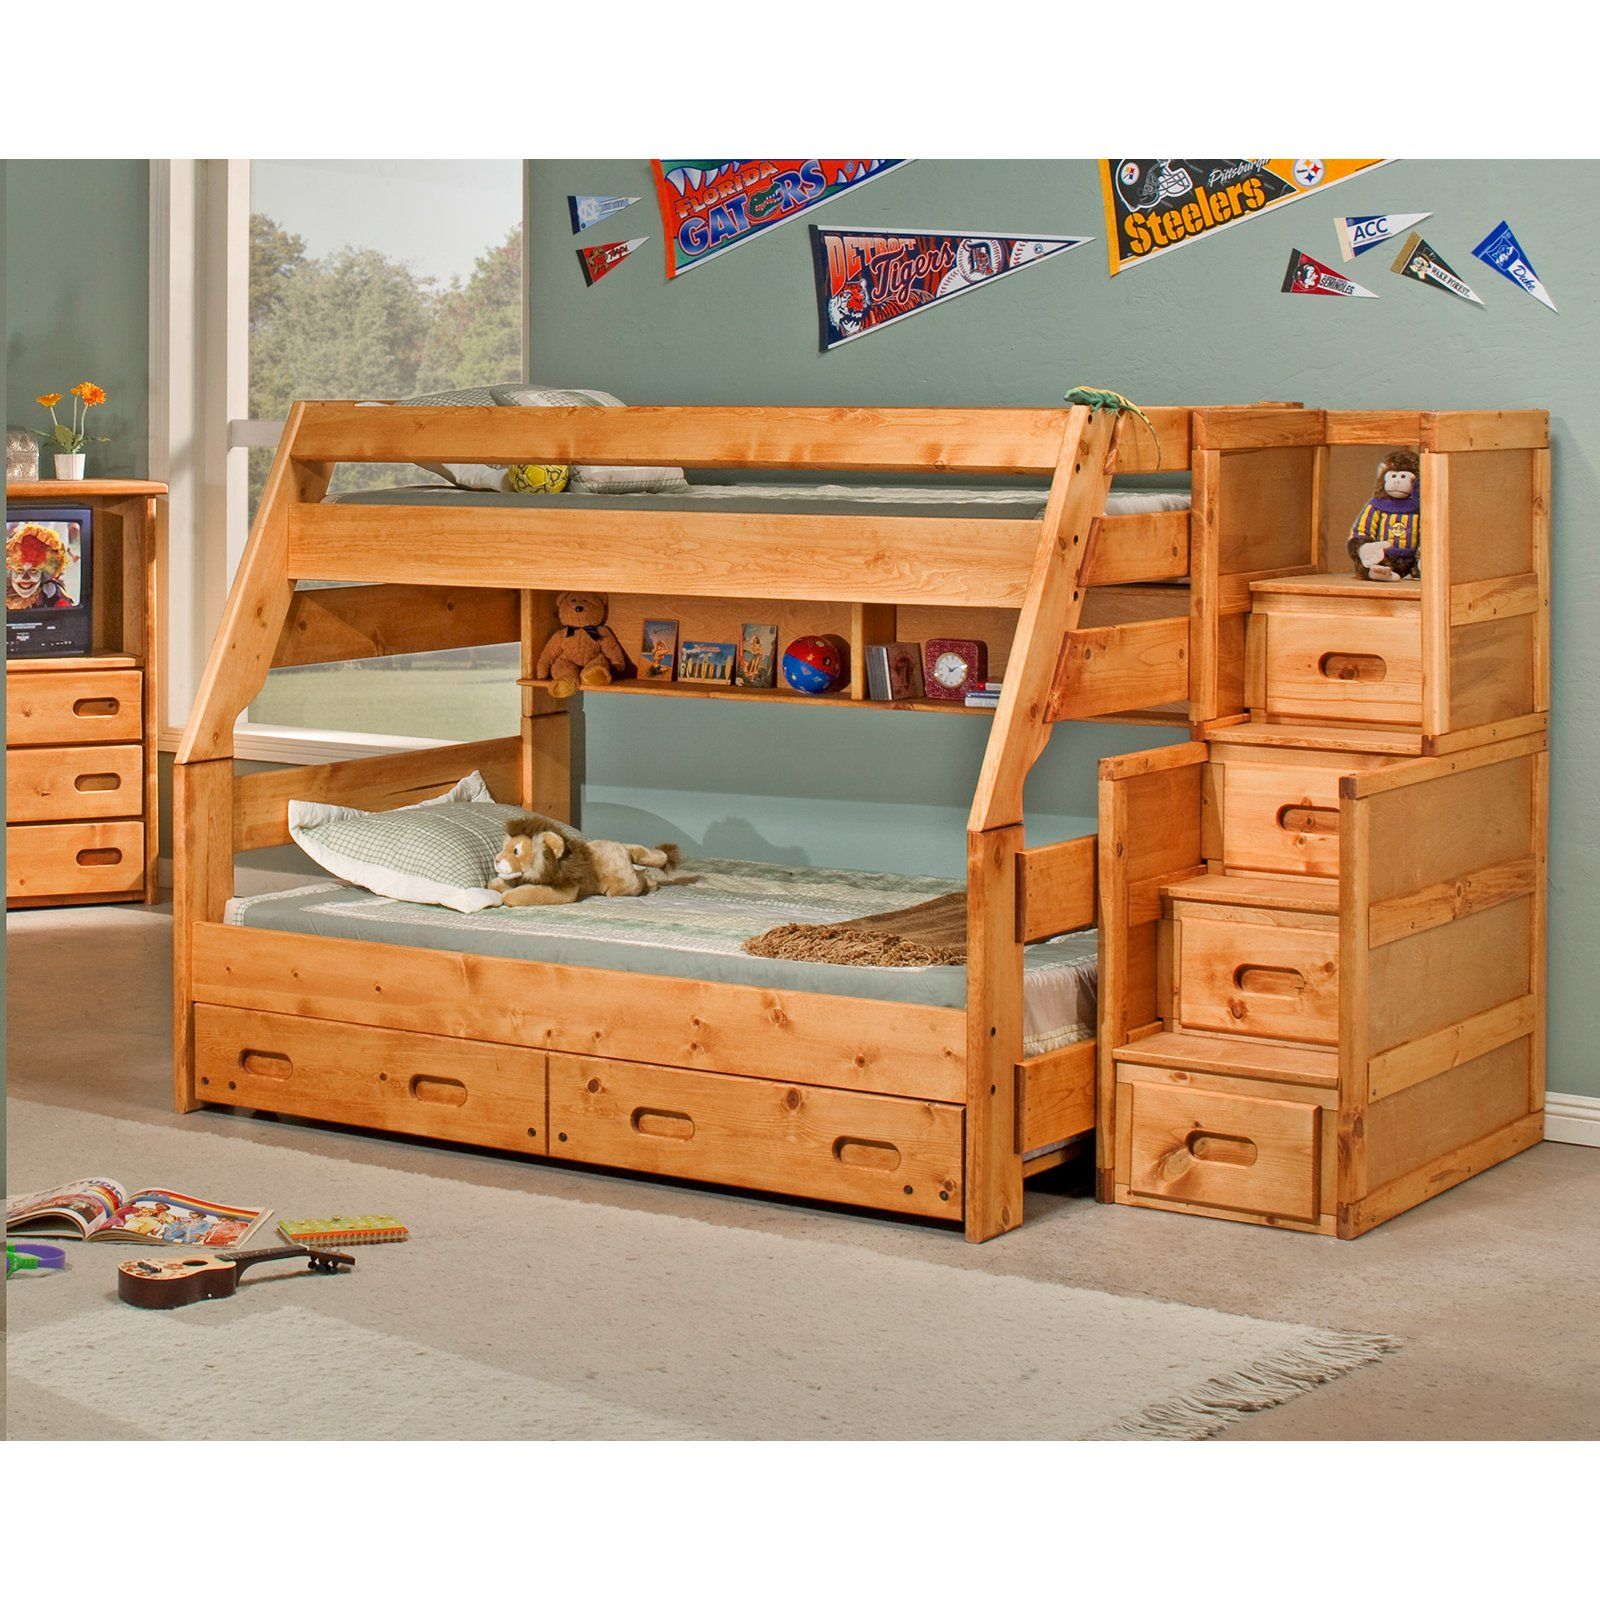 Rustic Classics Pine Twin Over Full Bunk Bed In Cinnamon